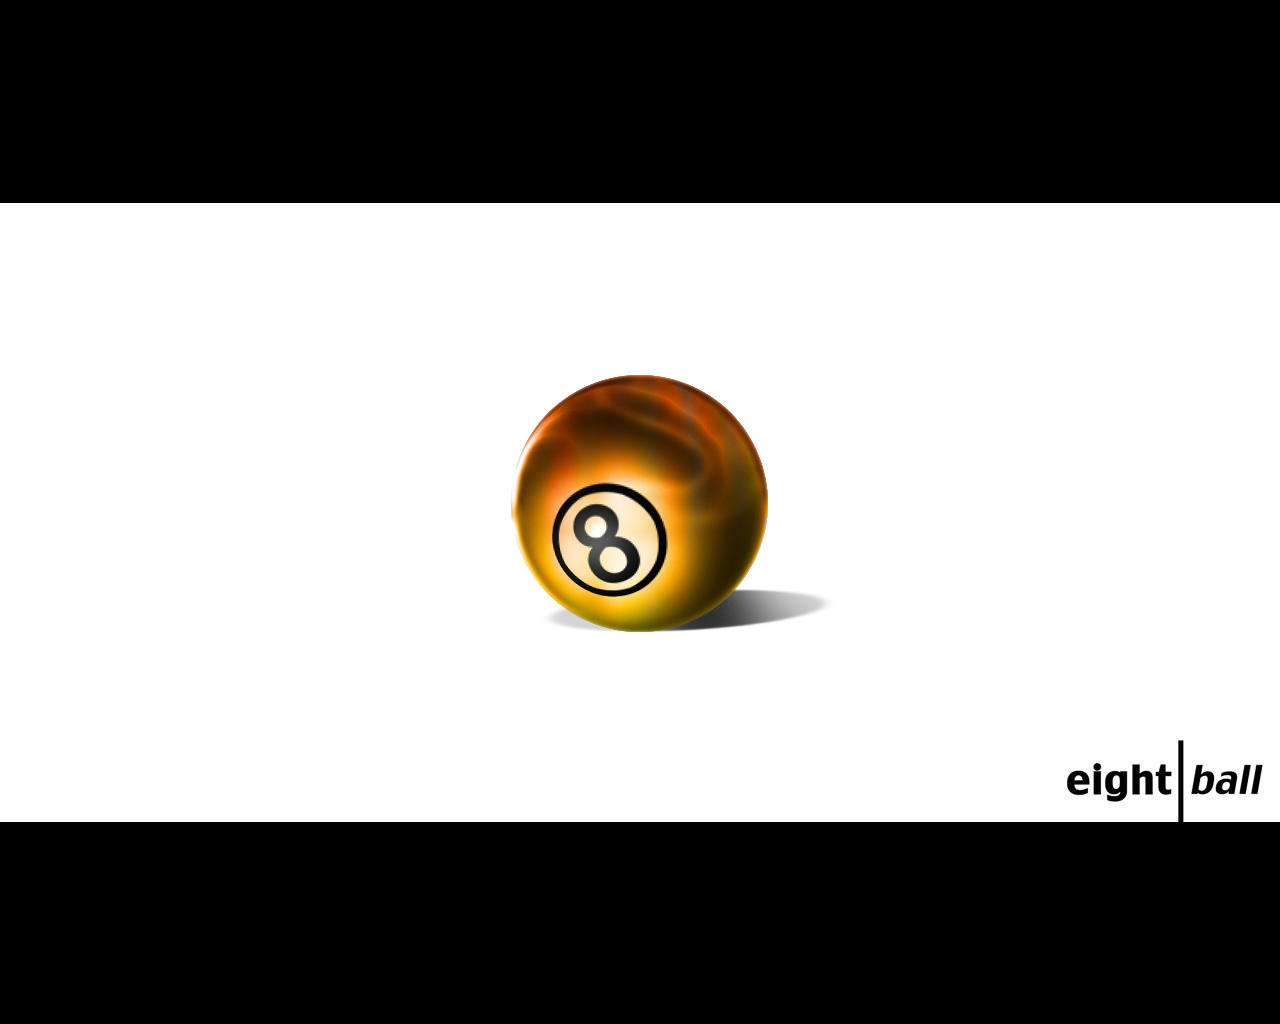 -8ball by outthere